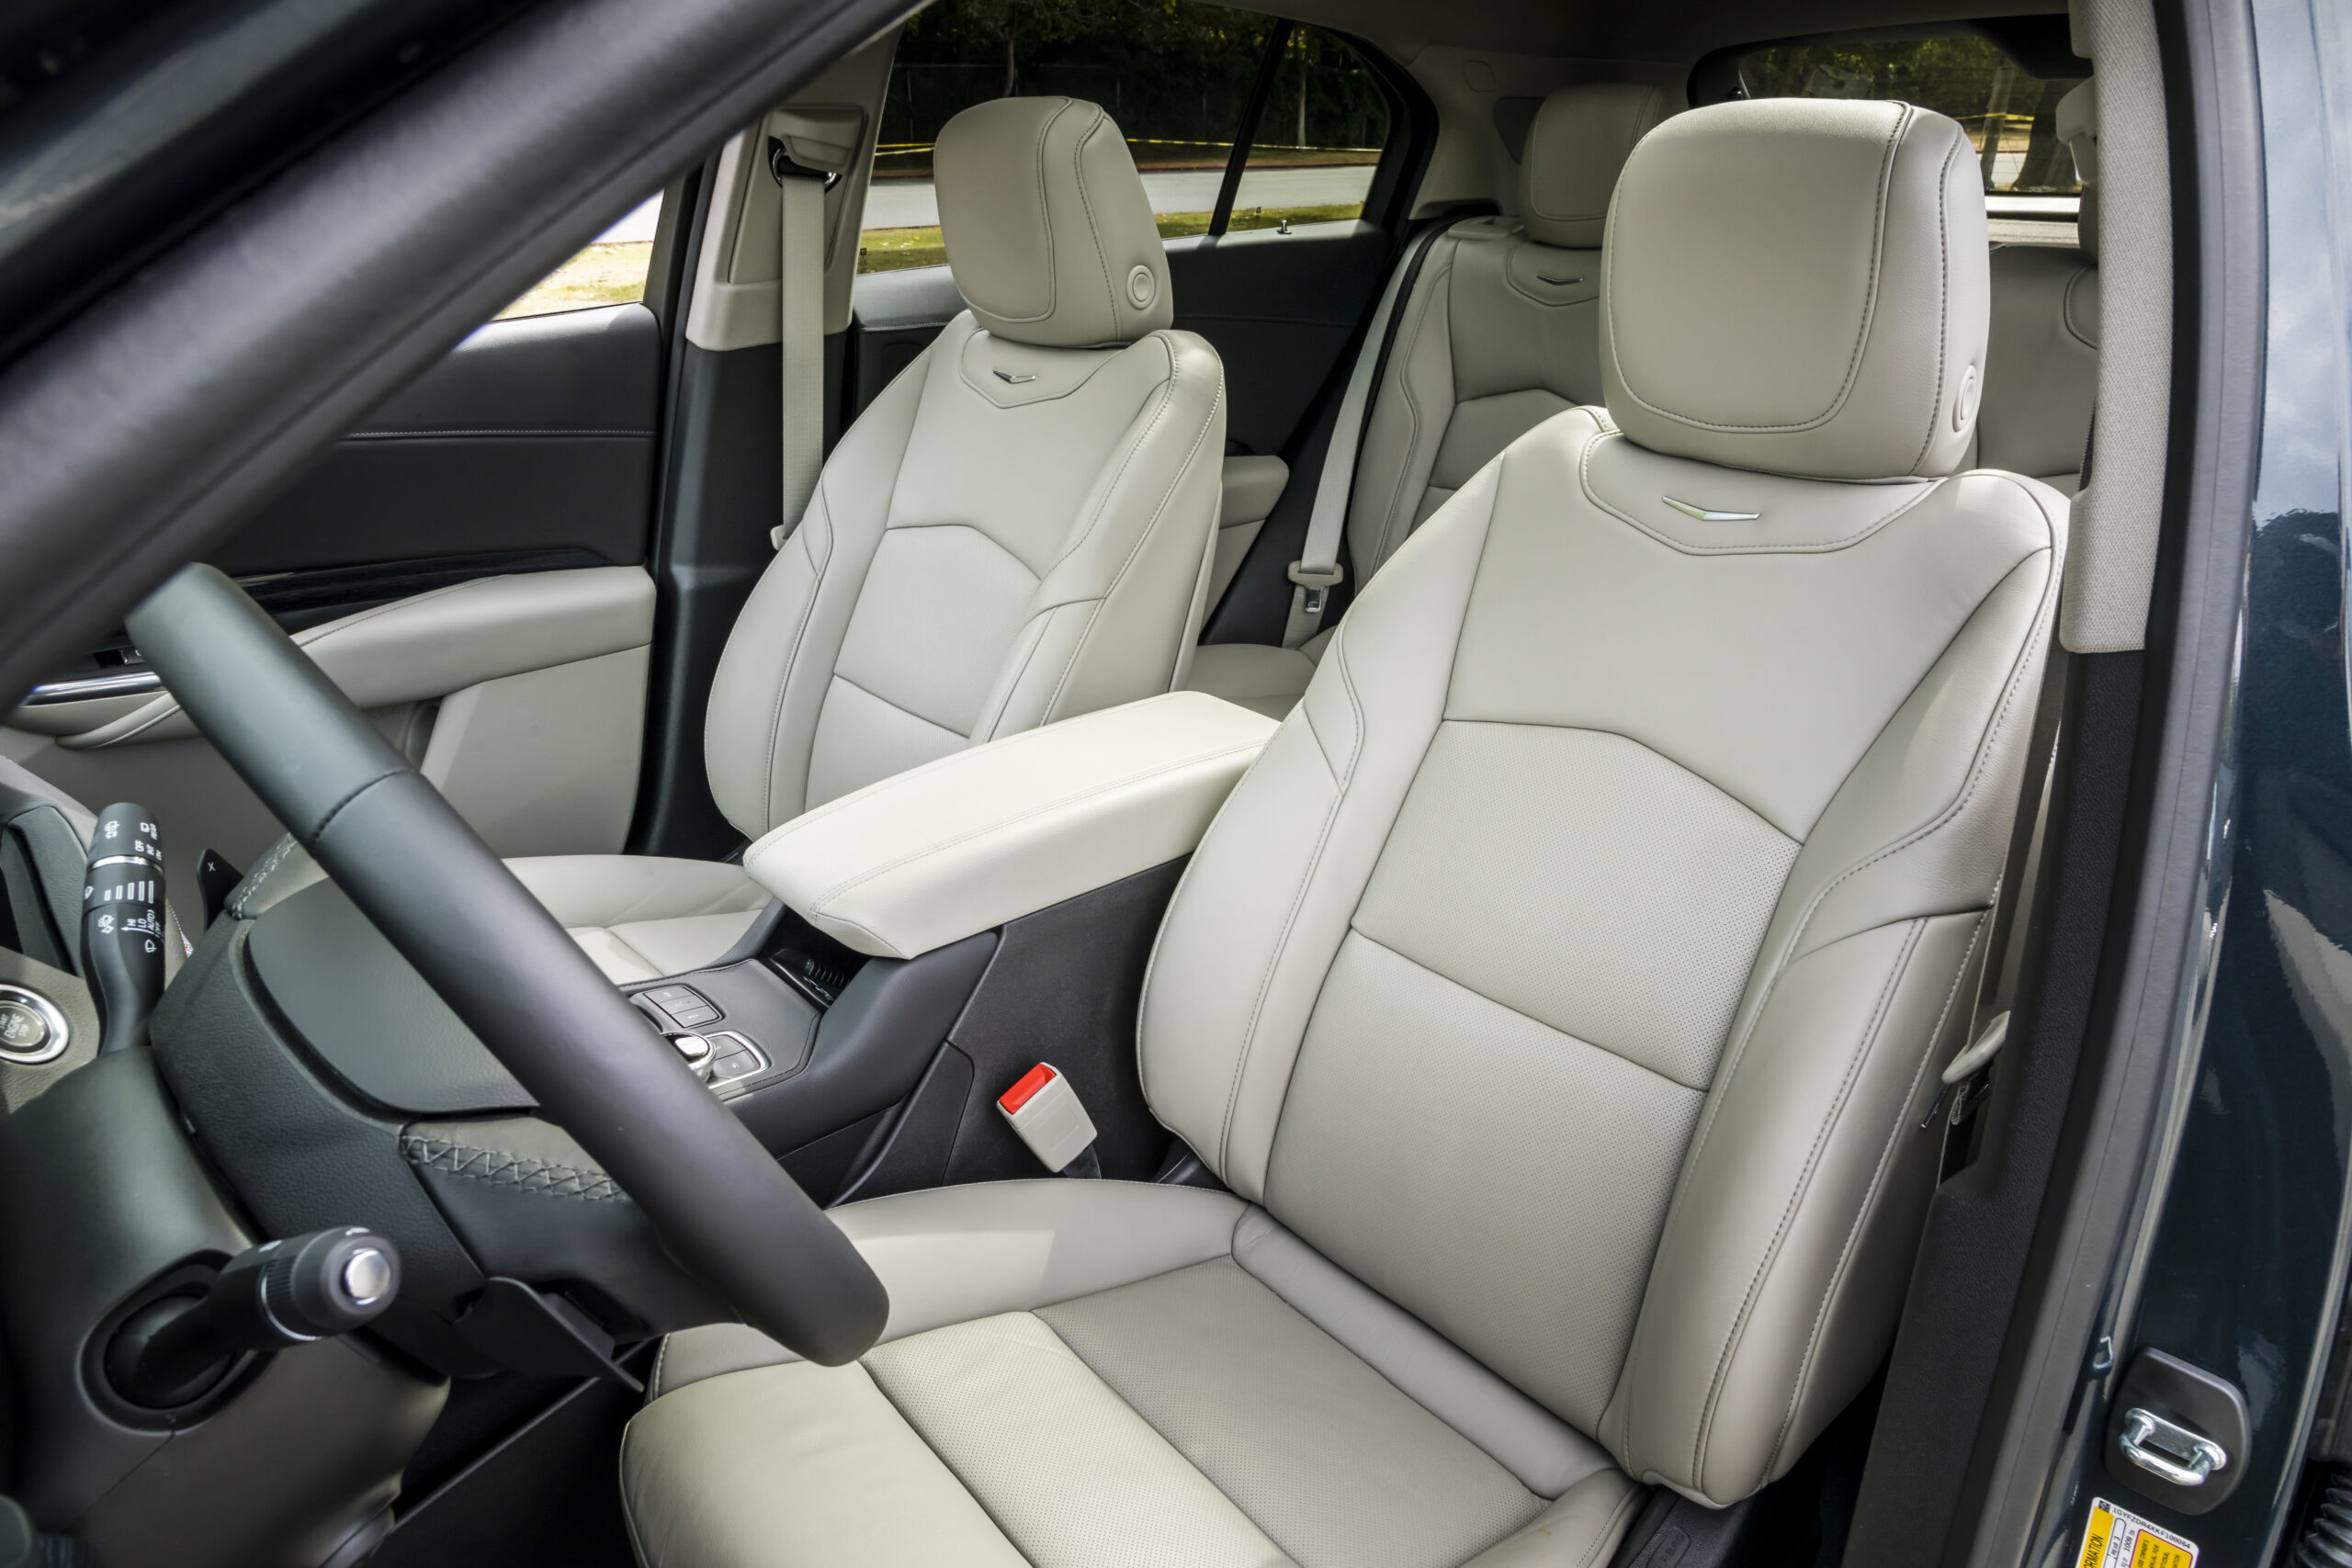 The interior of the XT4 is powerful, youthful and sporty.